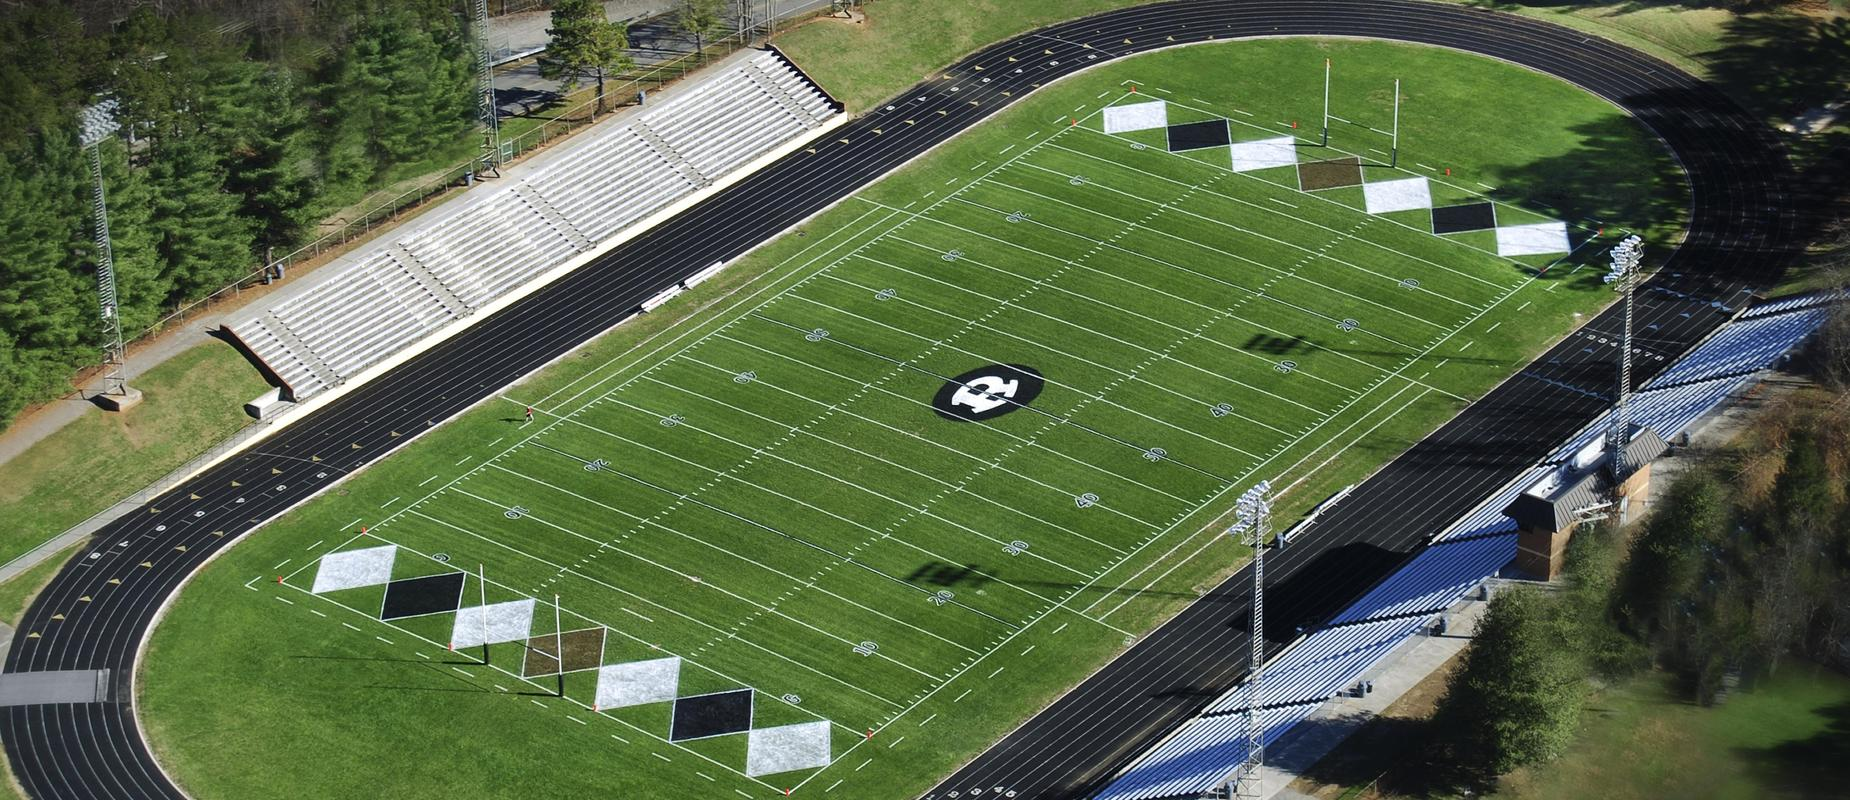 RHS Football Stadium, picture by Mark Armentrout